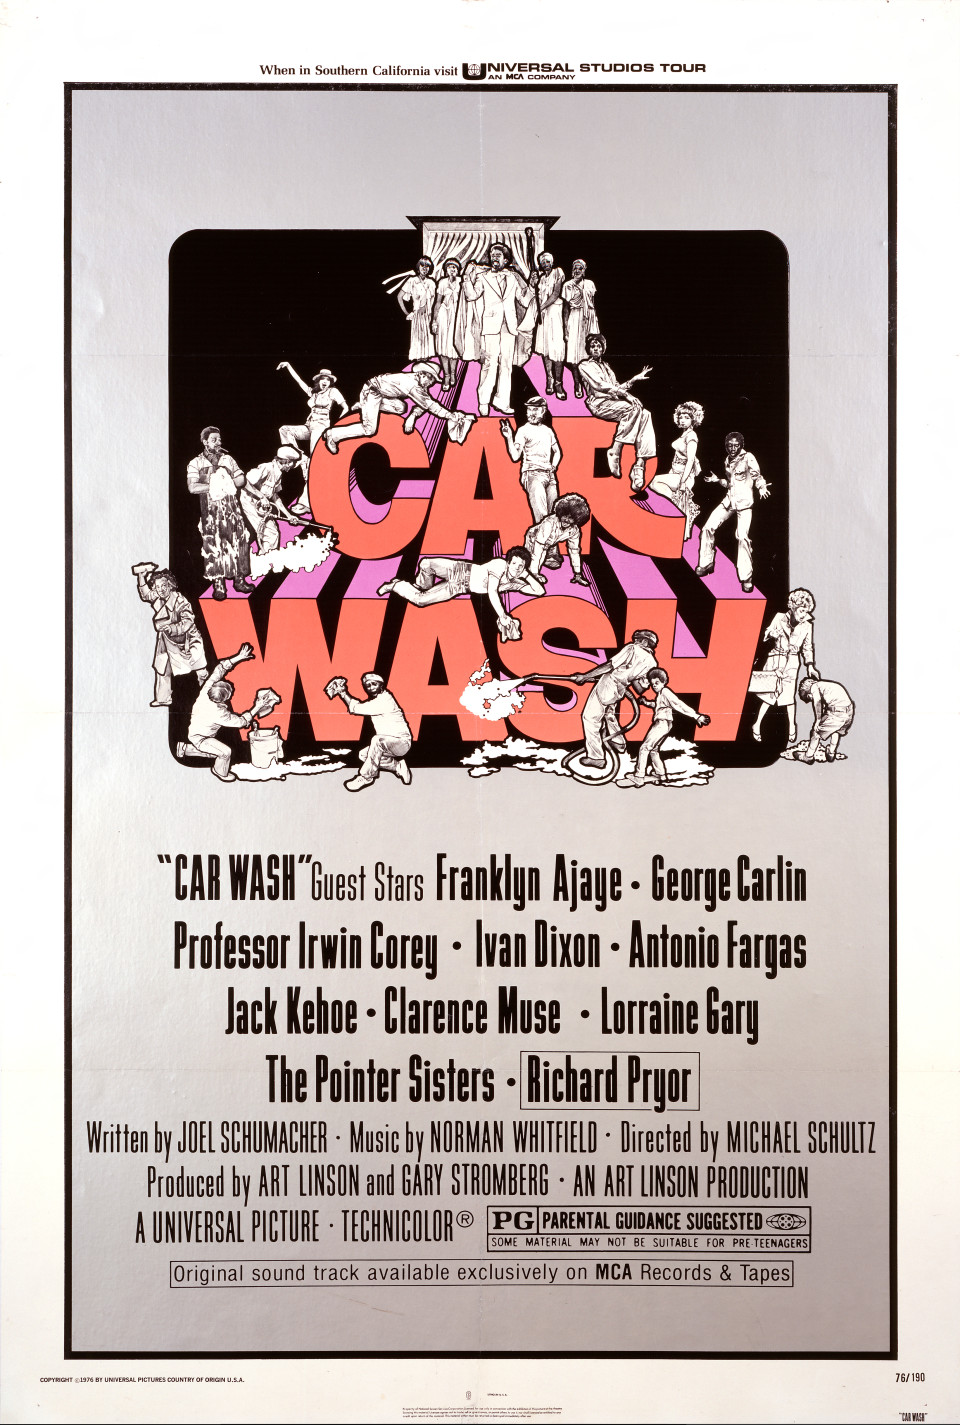 The *Car Wash* soundtrack marked the move from Motown to disco